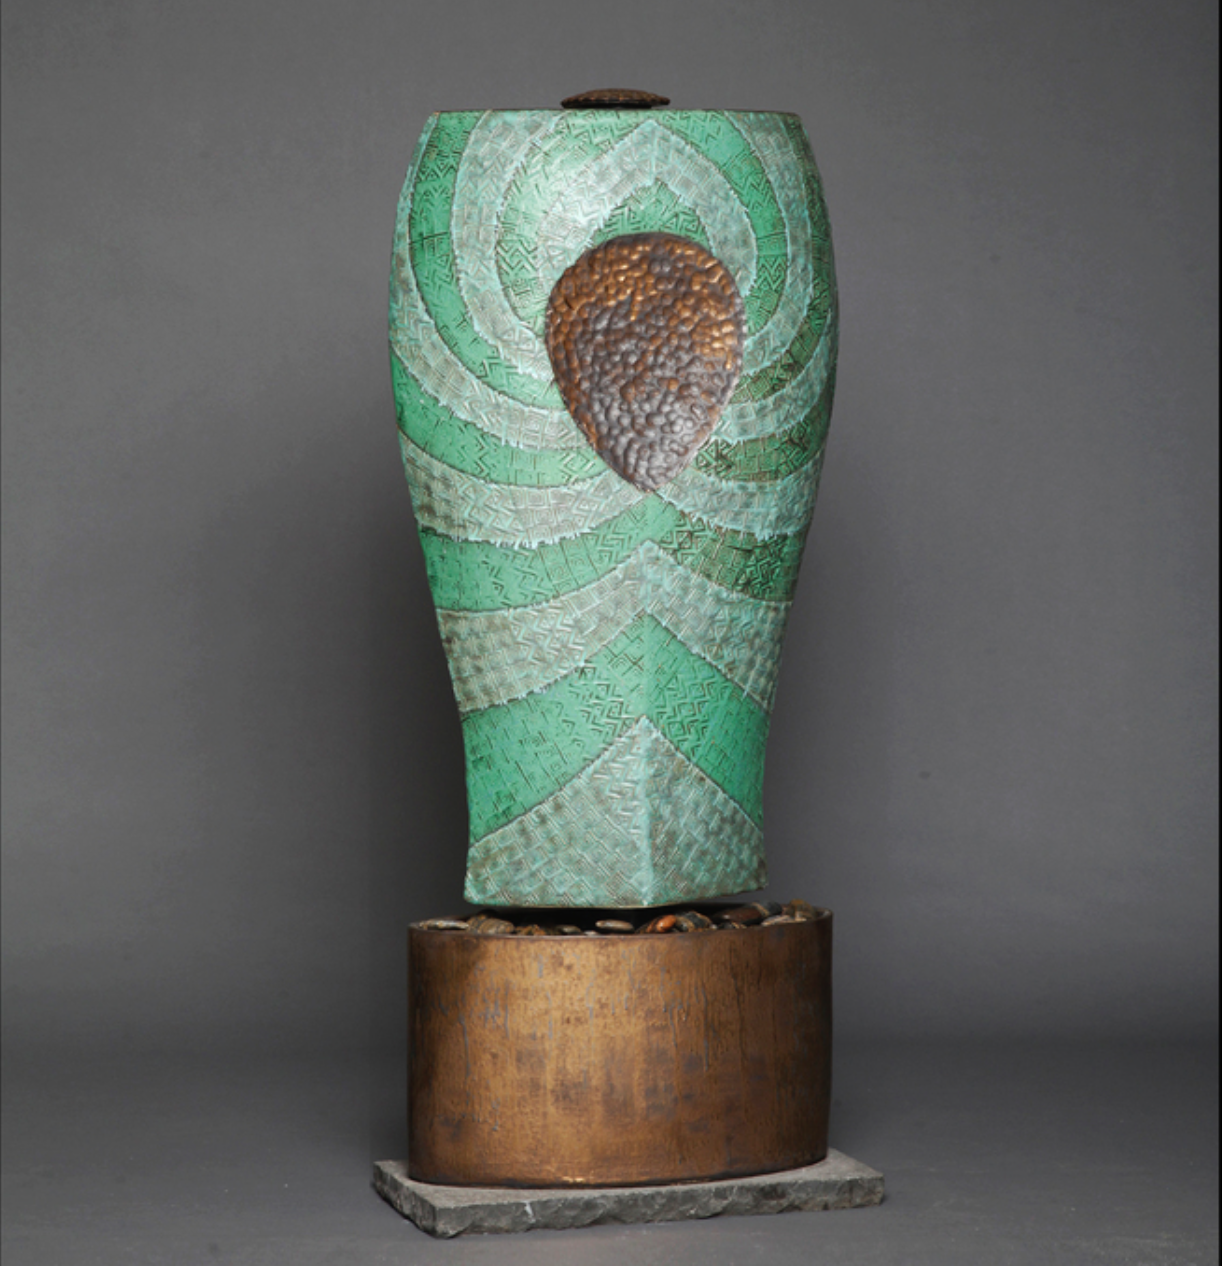 Damien Jones  - http://damienjonesart.comHighfired, handbuilt ceramic sculptures, wall pieces, and water features. Decoratively textured and glazed